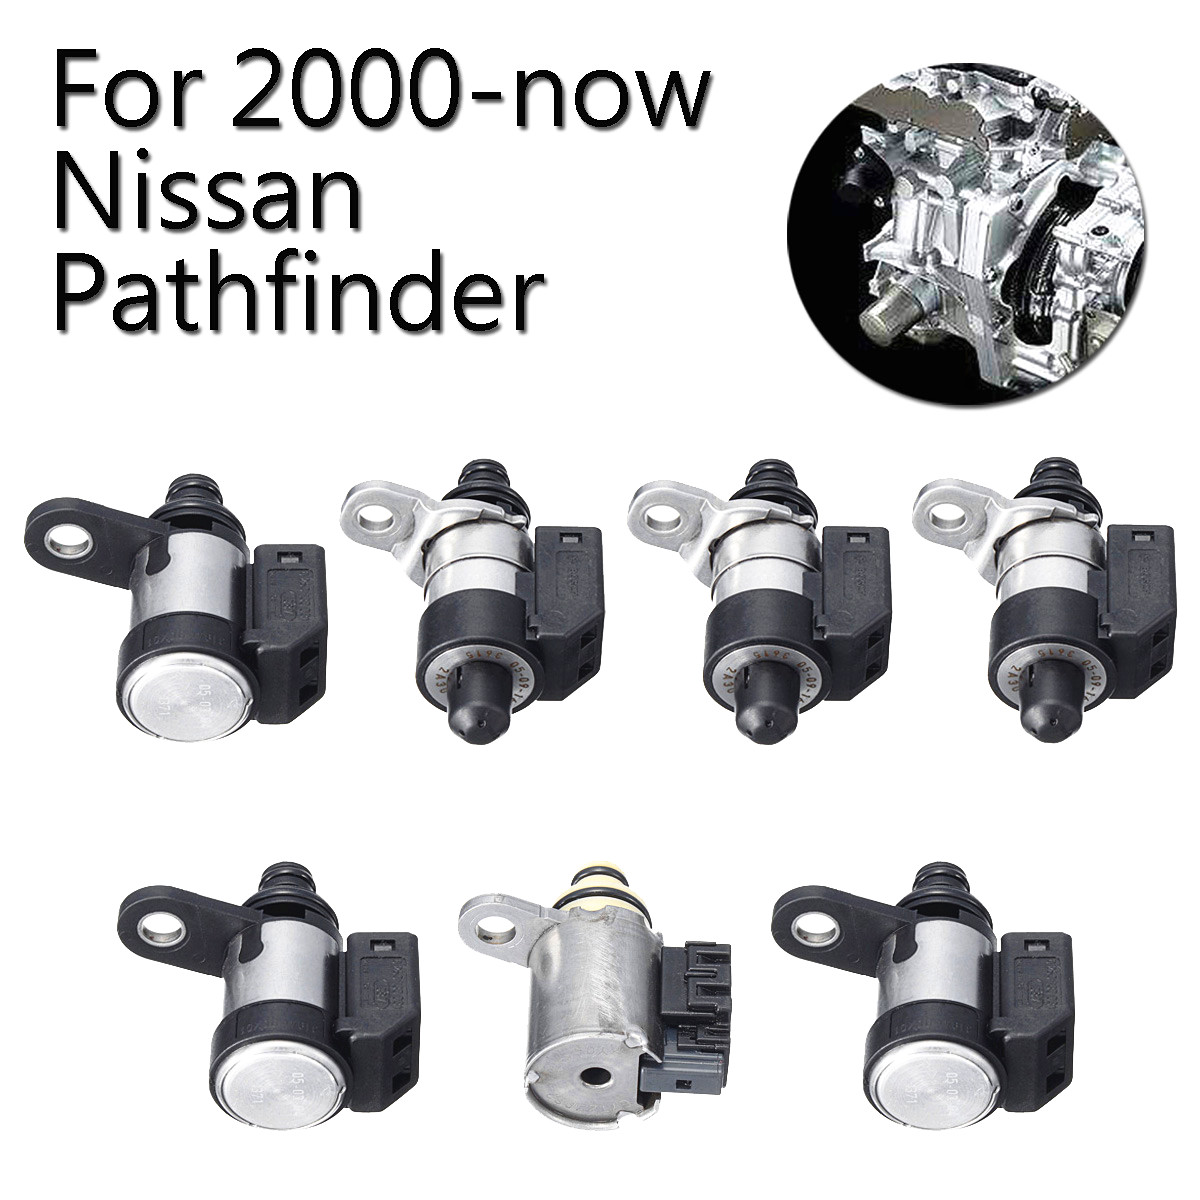 7PCS Transmission Solenoid Kit For 2000-now Nissan Pathfinder